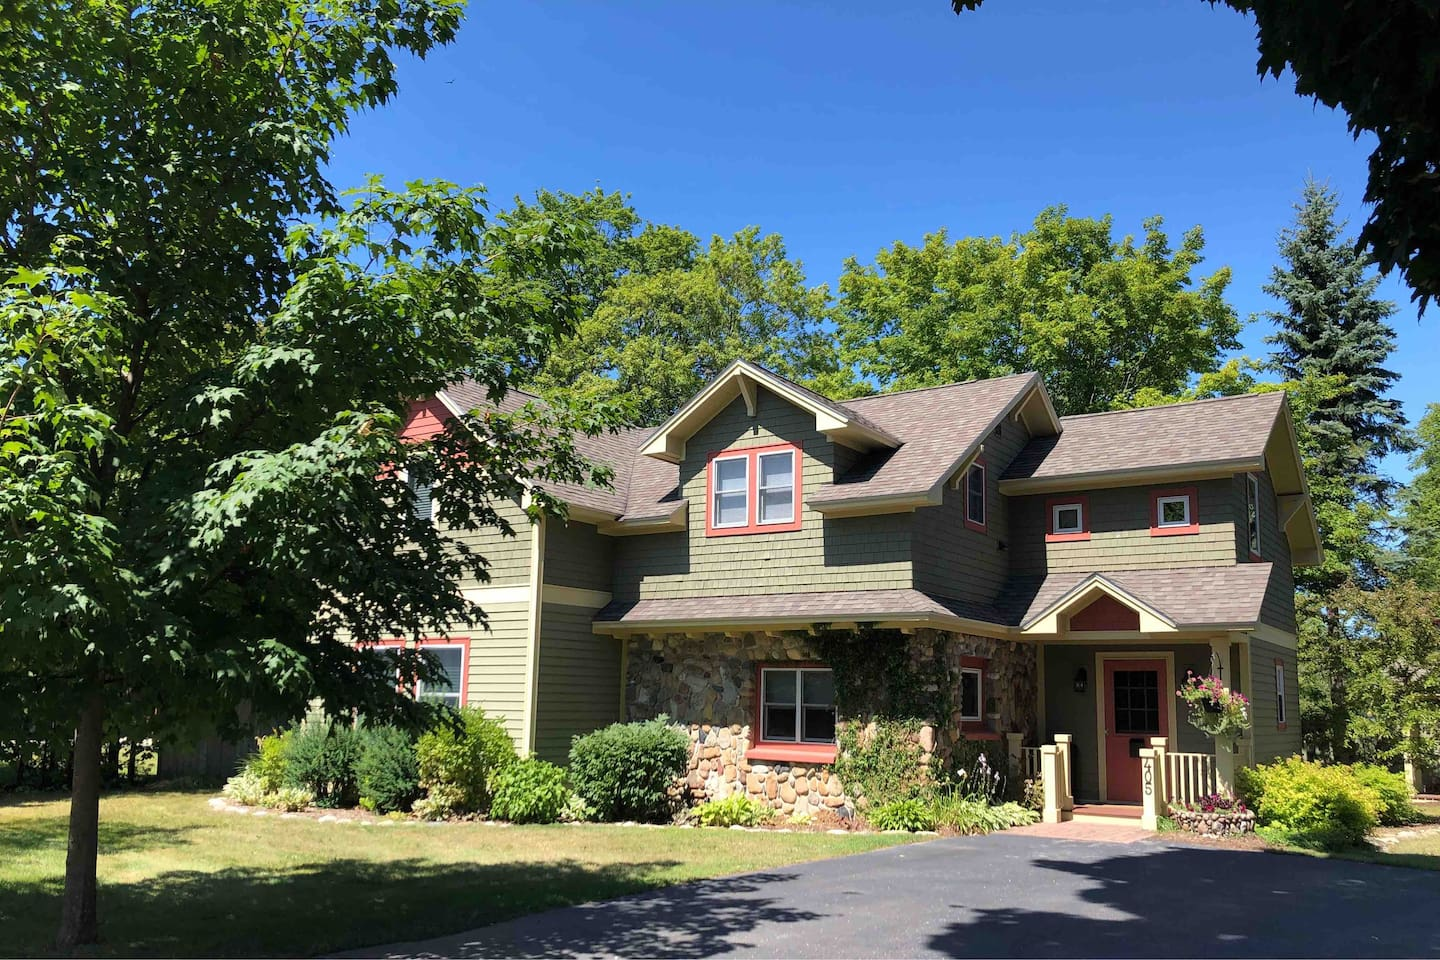 Beautifully updated exterior, large driveway and basketball hoop